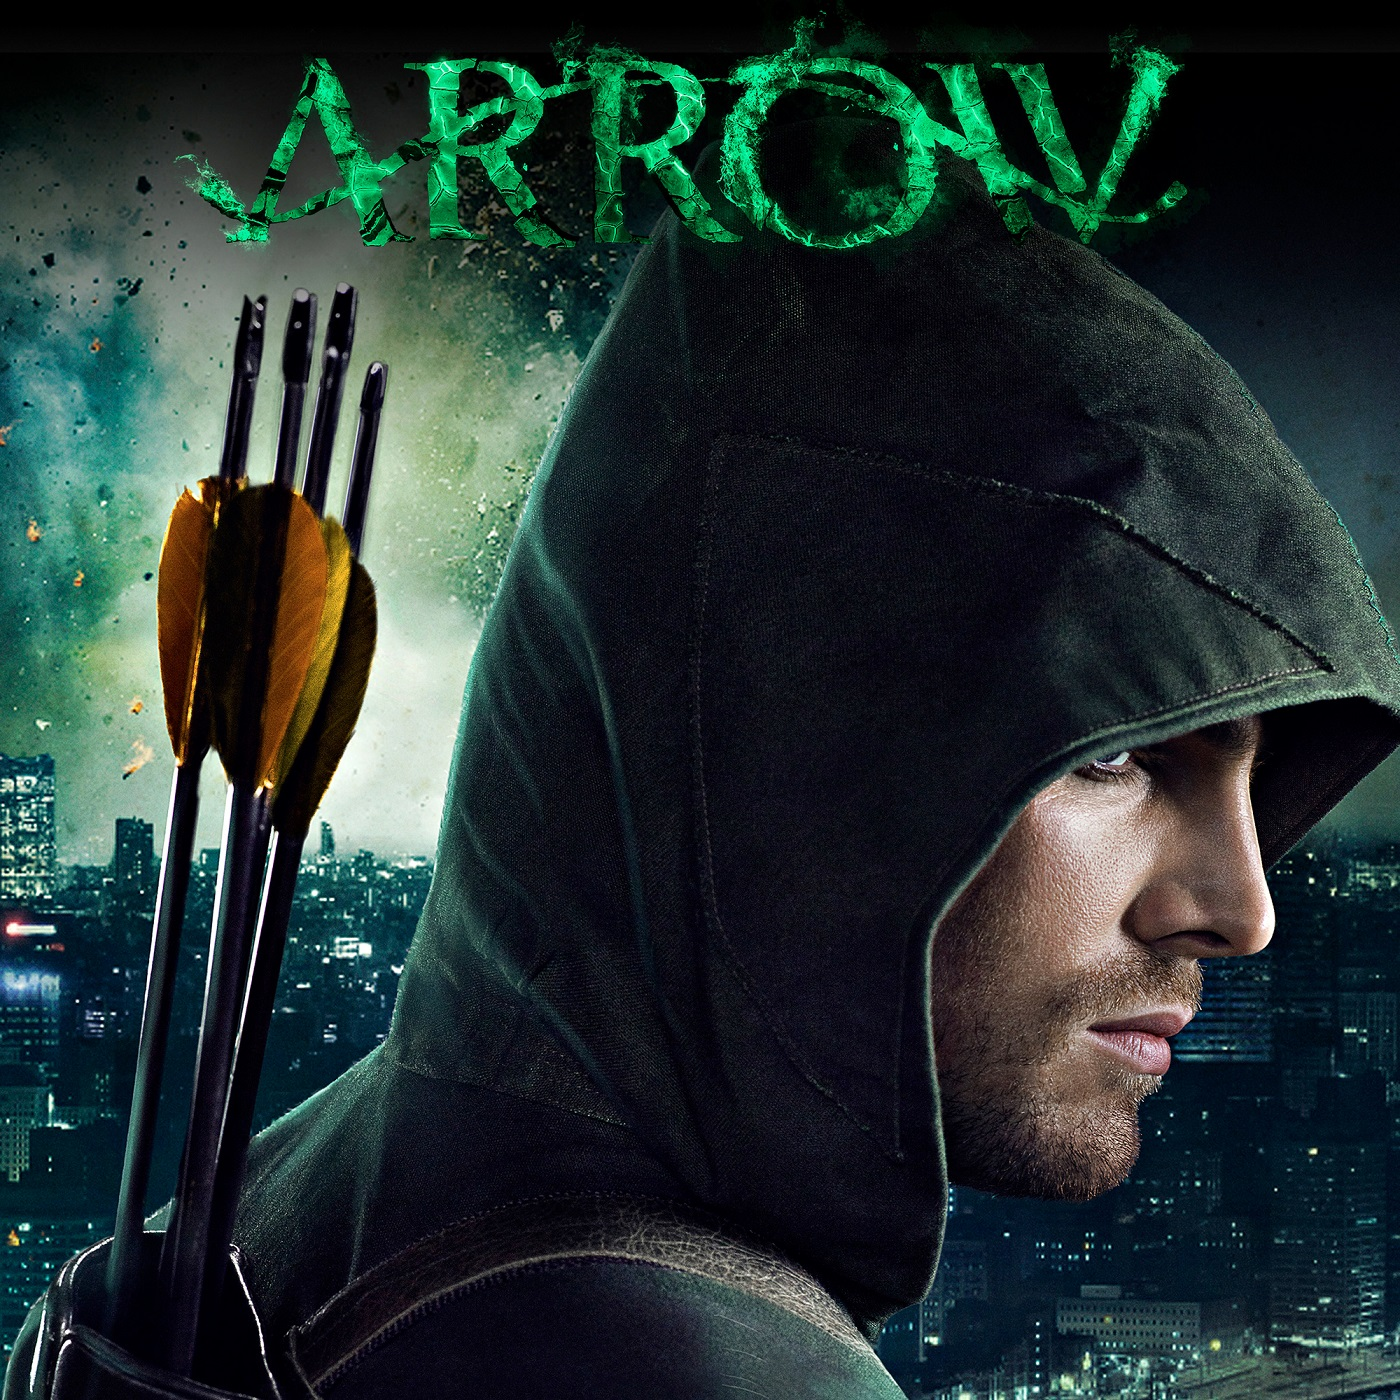 Arrow Seasons 01-03 | S03E01-E13 HDTV + 720P 1lnp